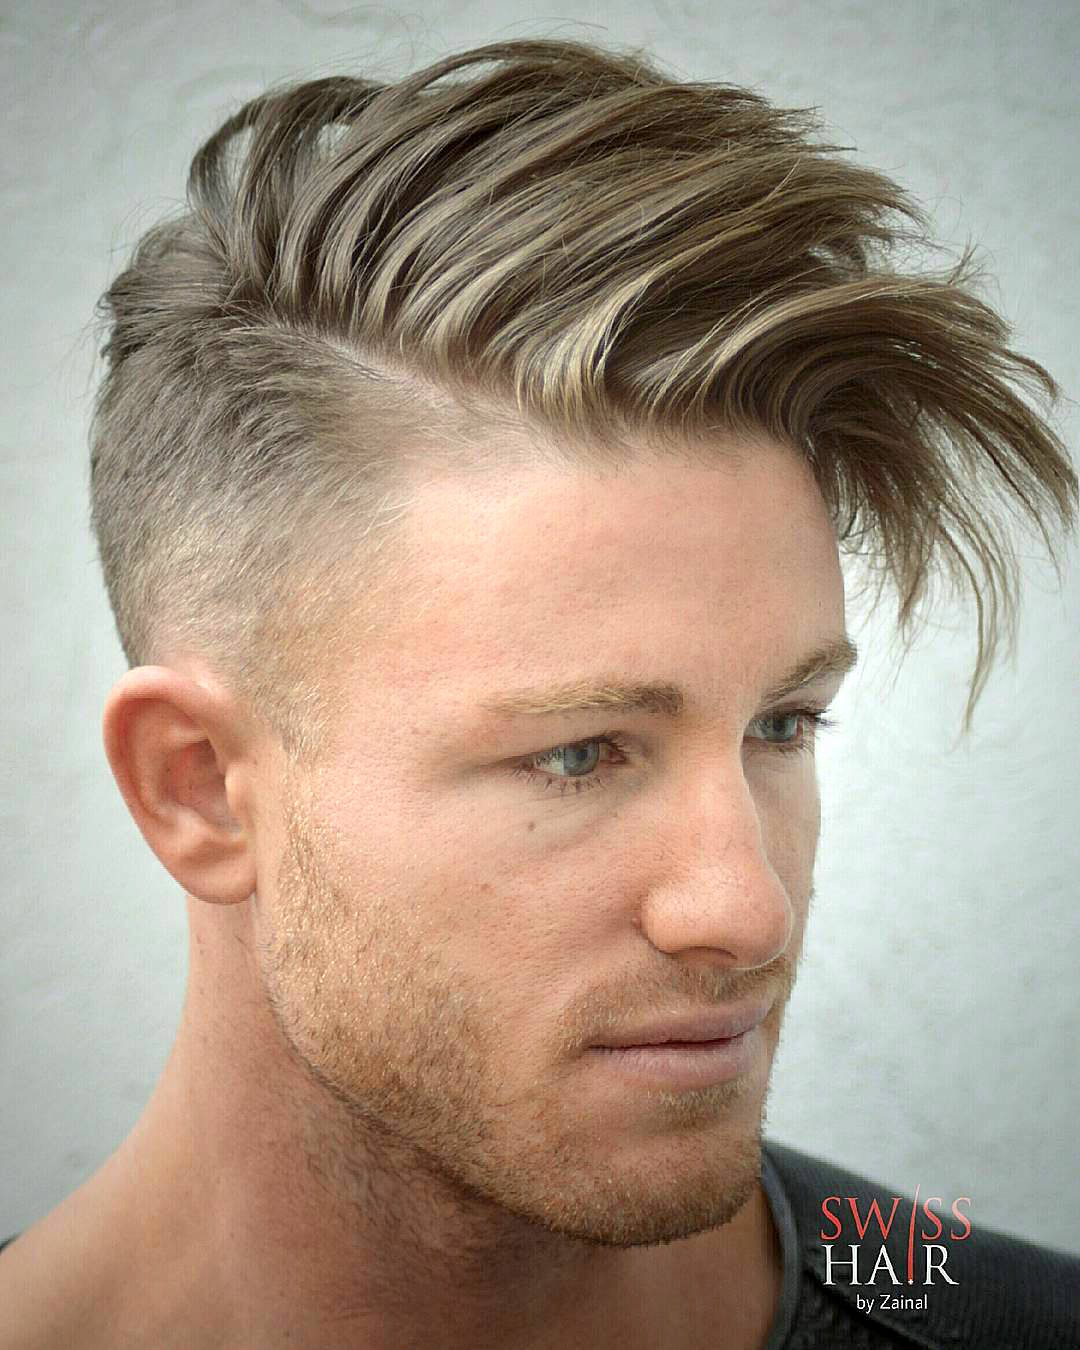 swisshairbyzainal_and-short-sides-and-long-hair-on-top